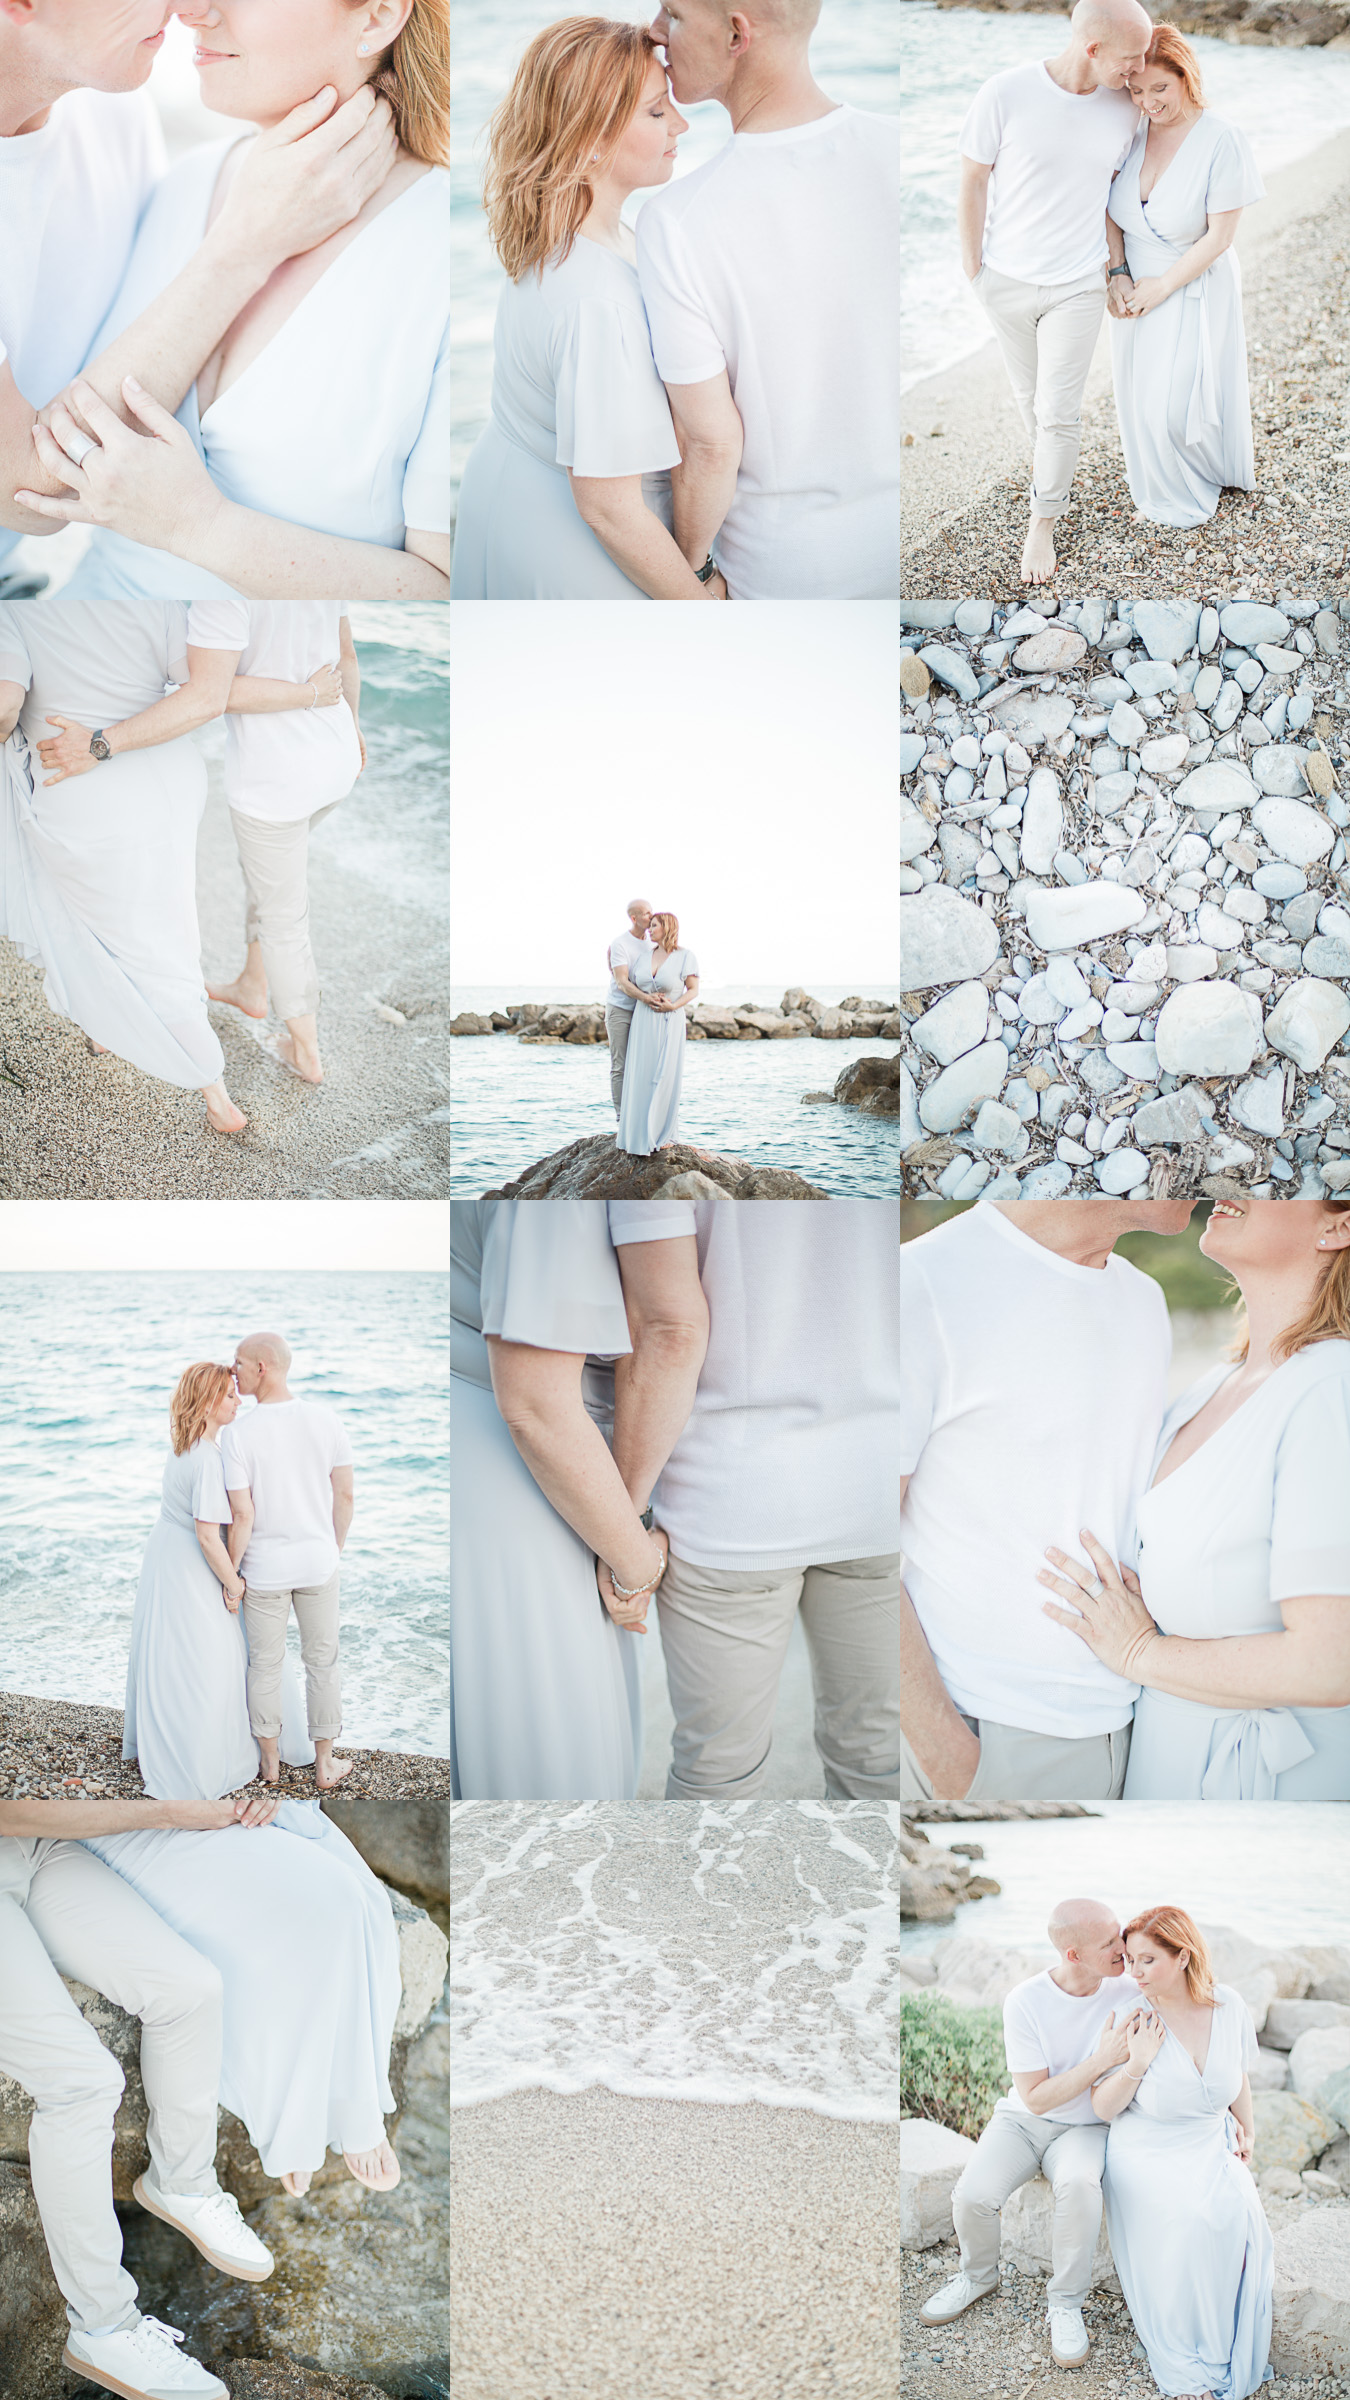 wedding engagement photo session photographer french riviera